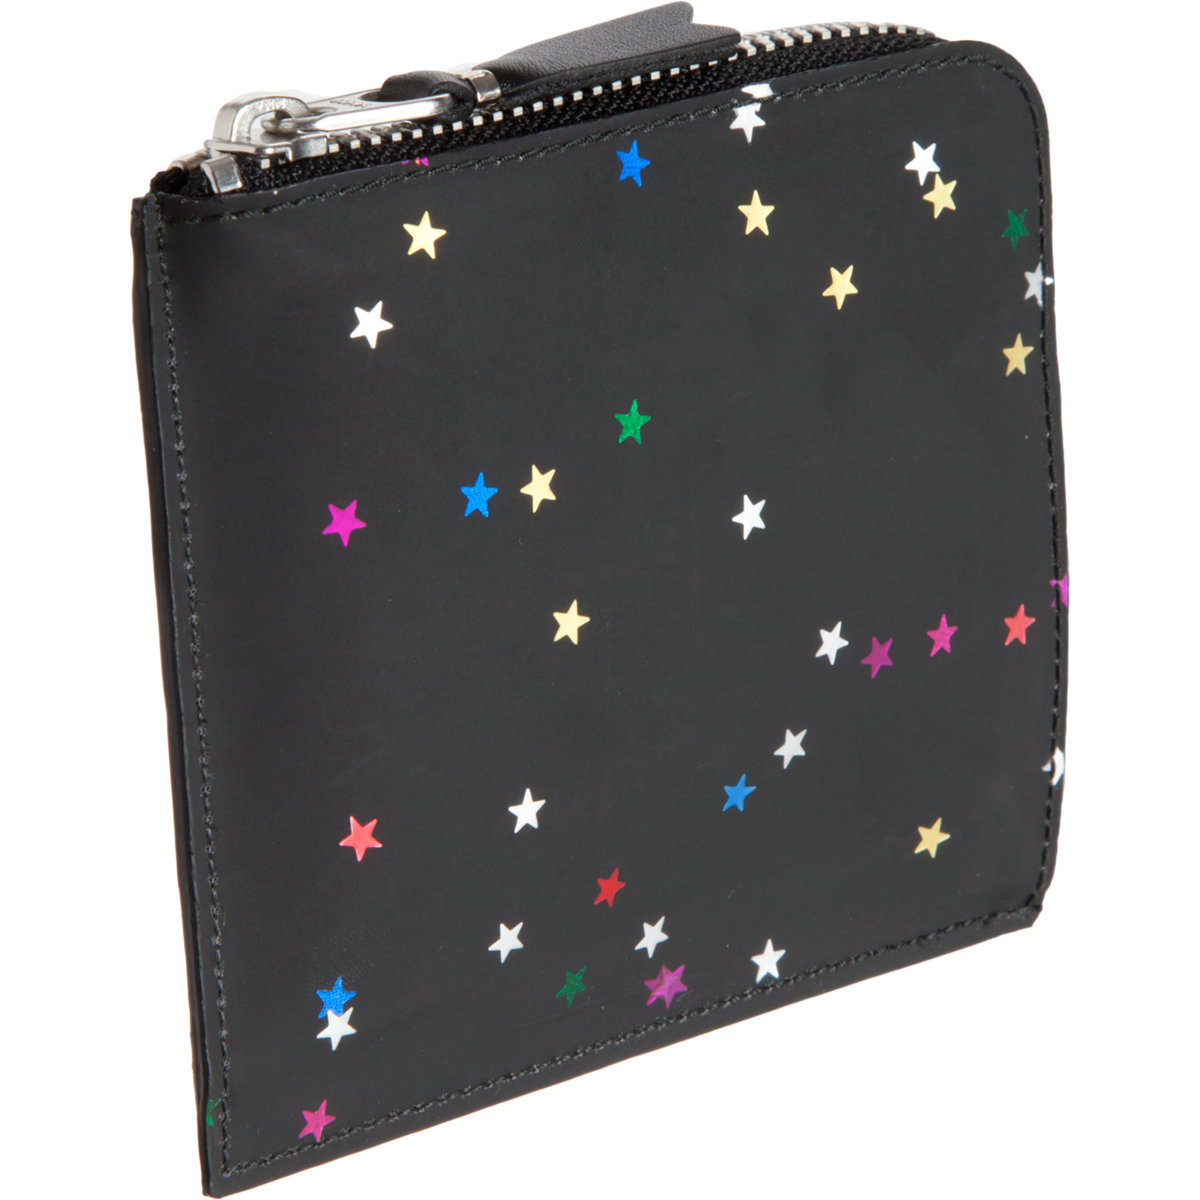 Watch COMME des GARCONS Bright Star Document Holder video